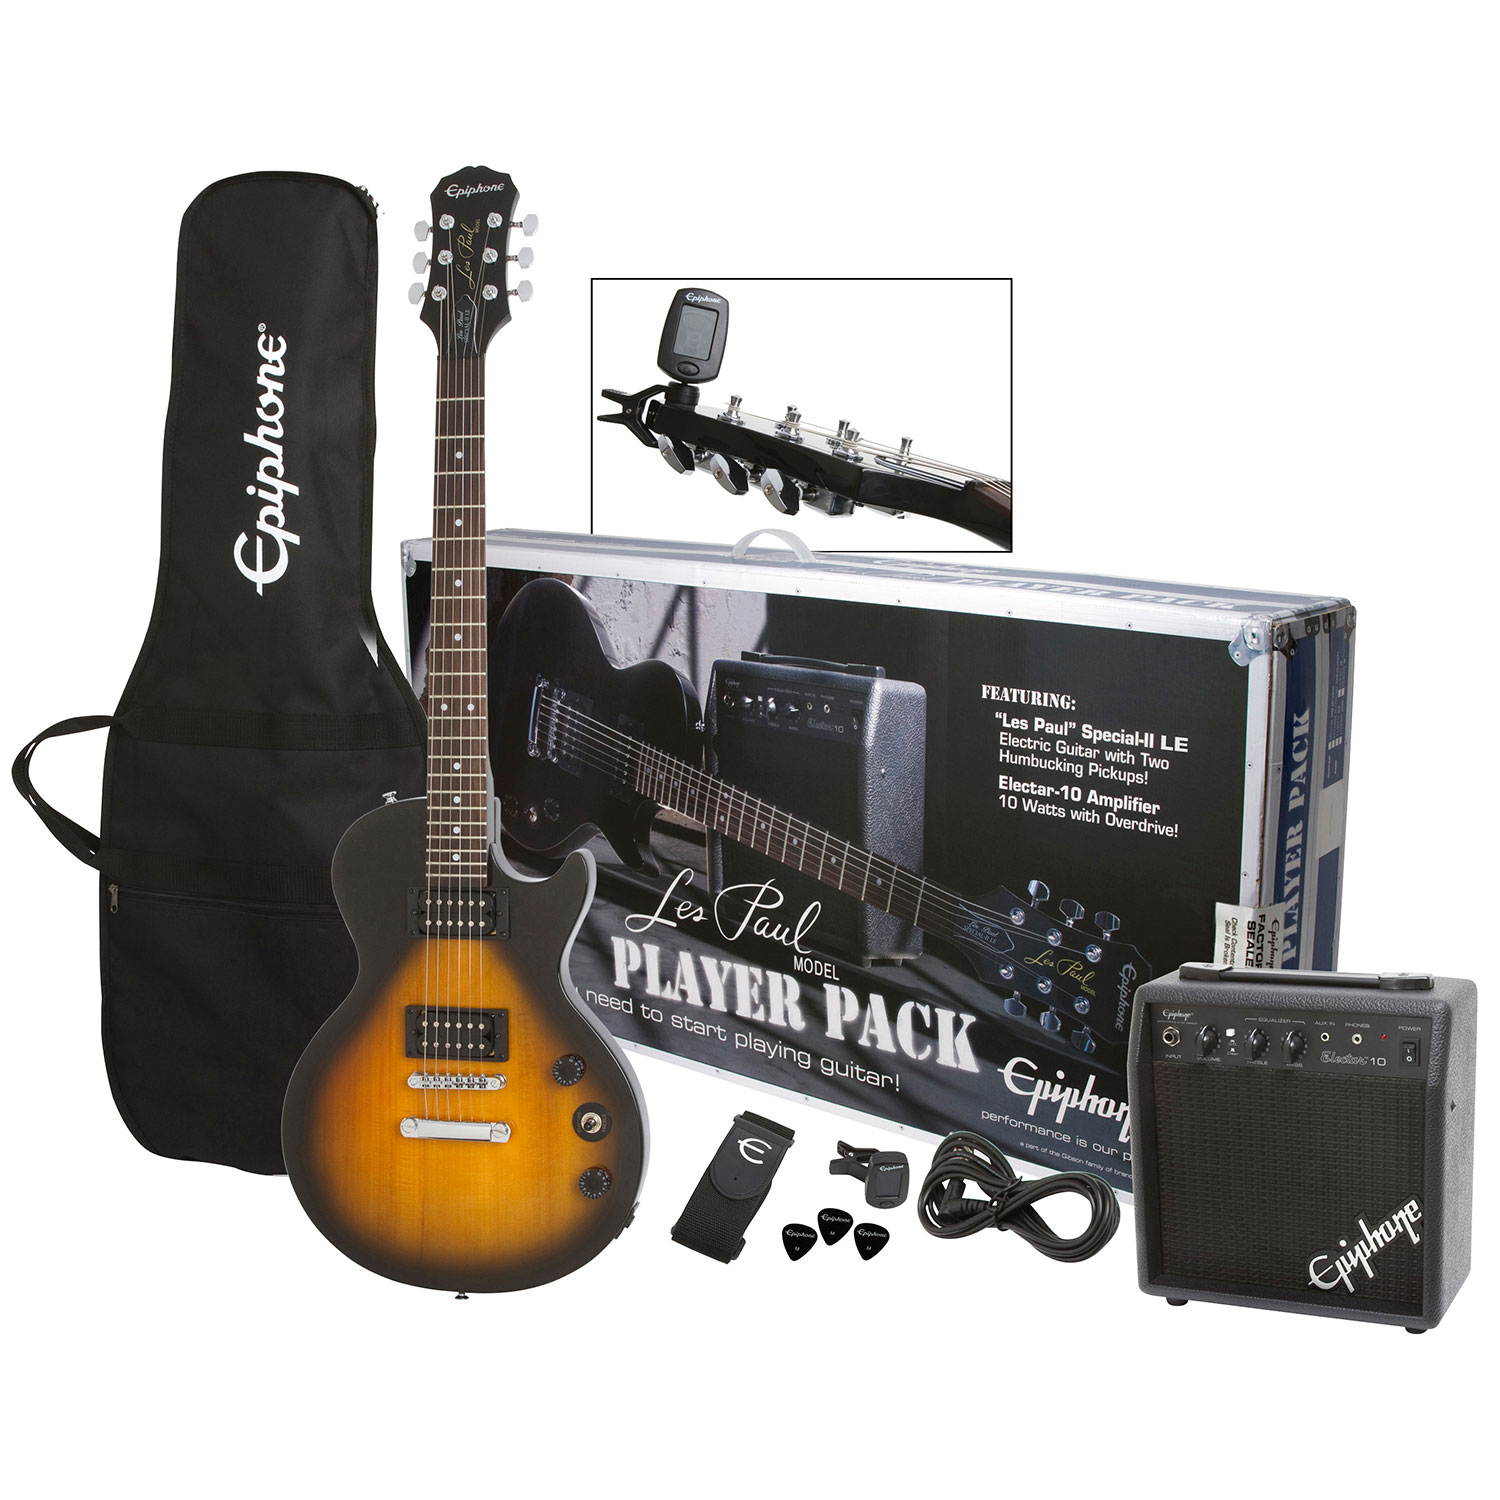 Guitar Acoustic Electric Bass Best Buy Canada Gibson Les Paul Wiring Kit High End Switch Spec Epiphone Player Pack Ppeg Egl1vsch1 Vintage Sunburst